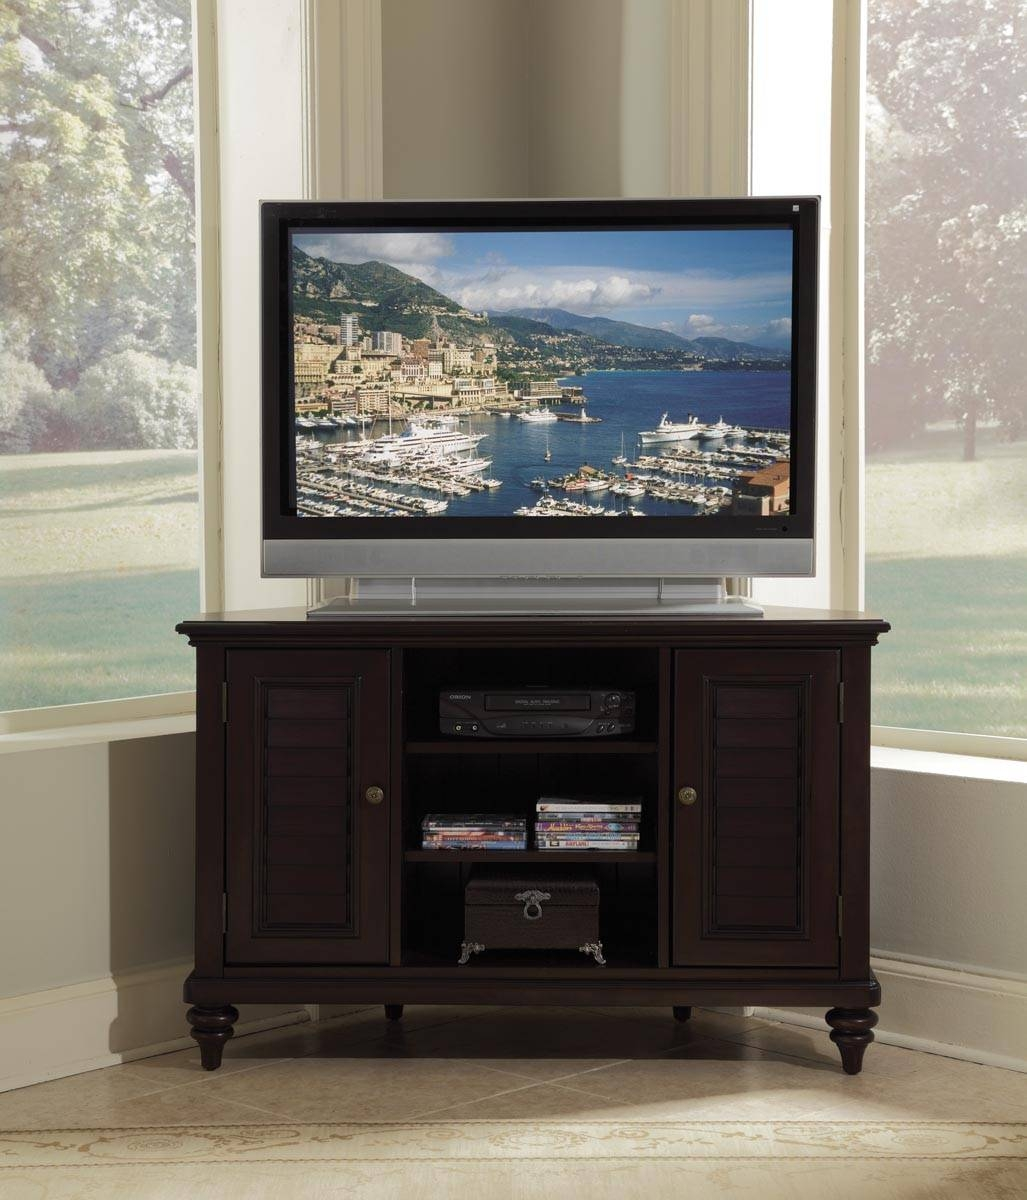 Home Styles Bermuda Corner Tv Stand 554X-07 with regard to Expresso Tv Stands (Image 9 of 15)